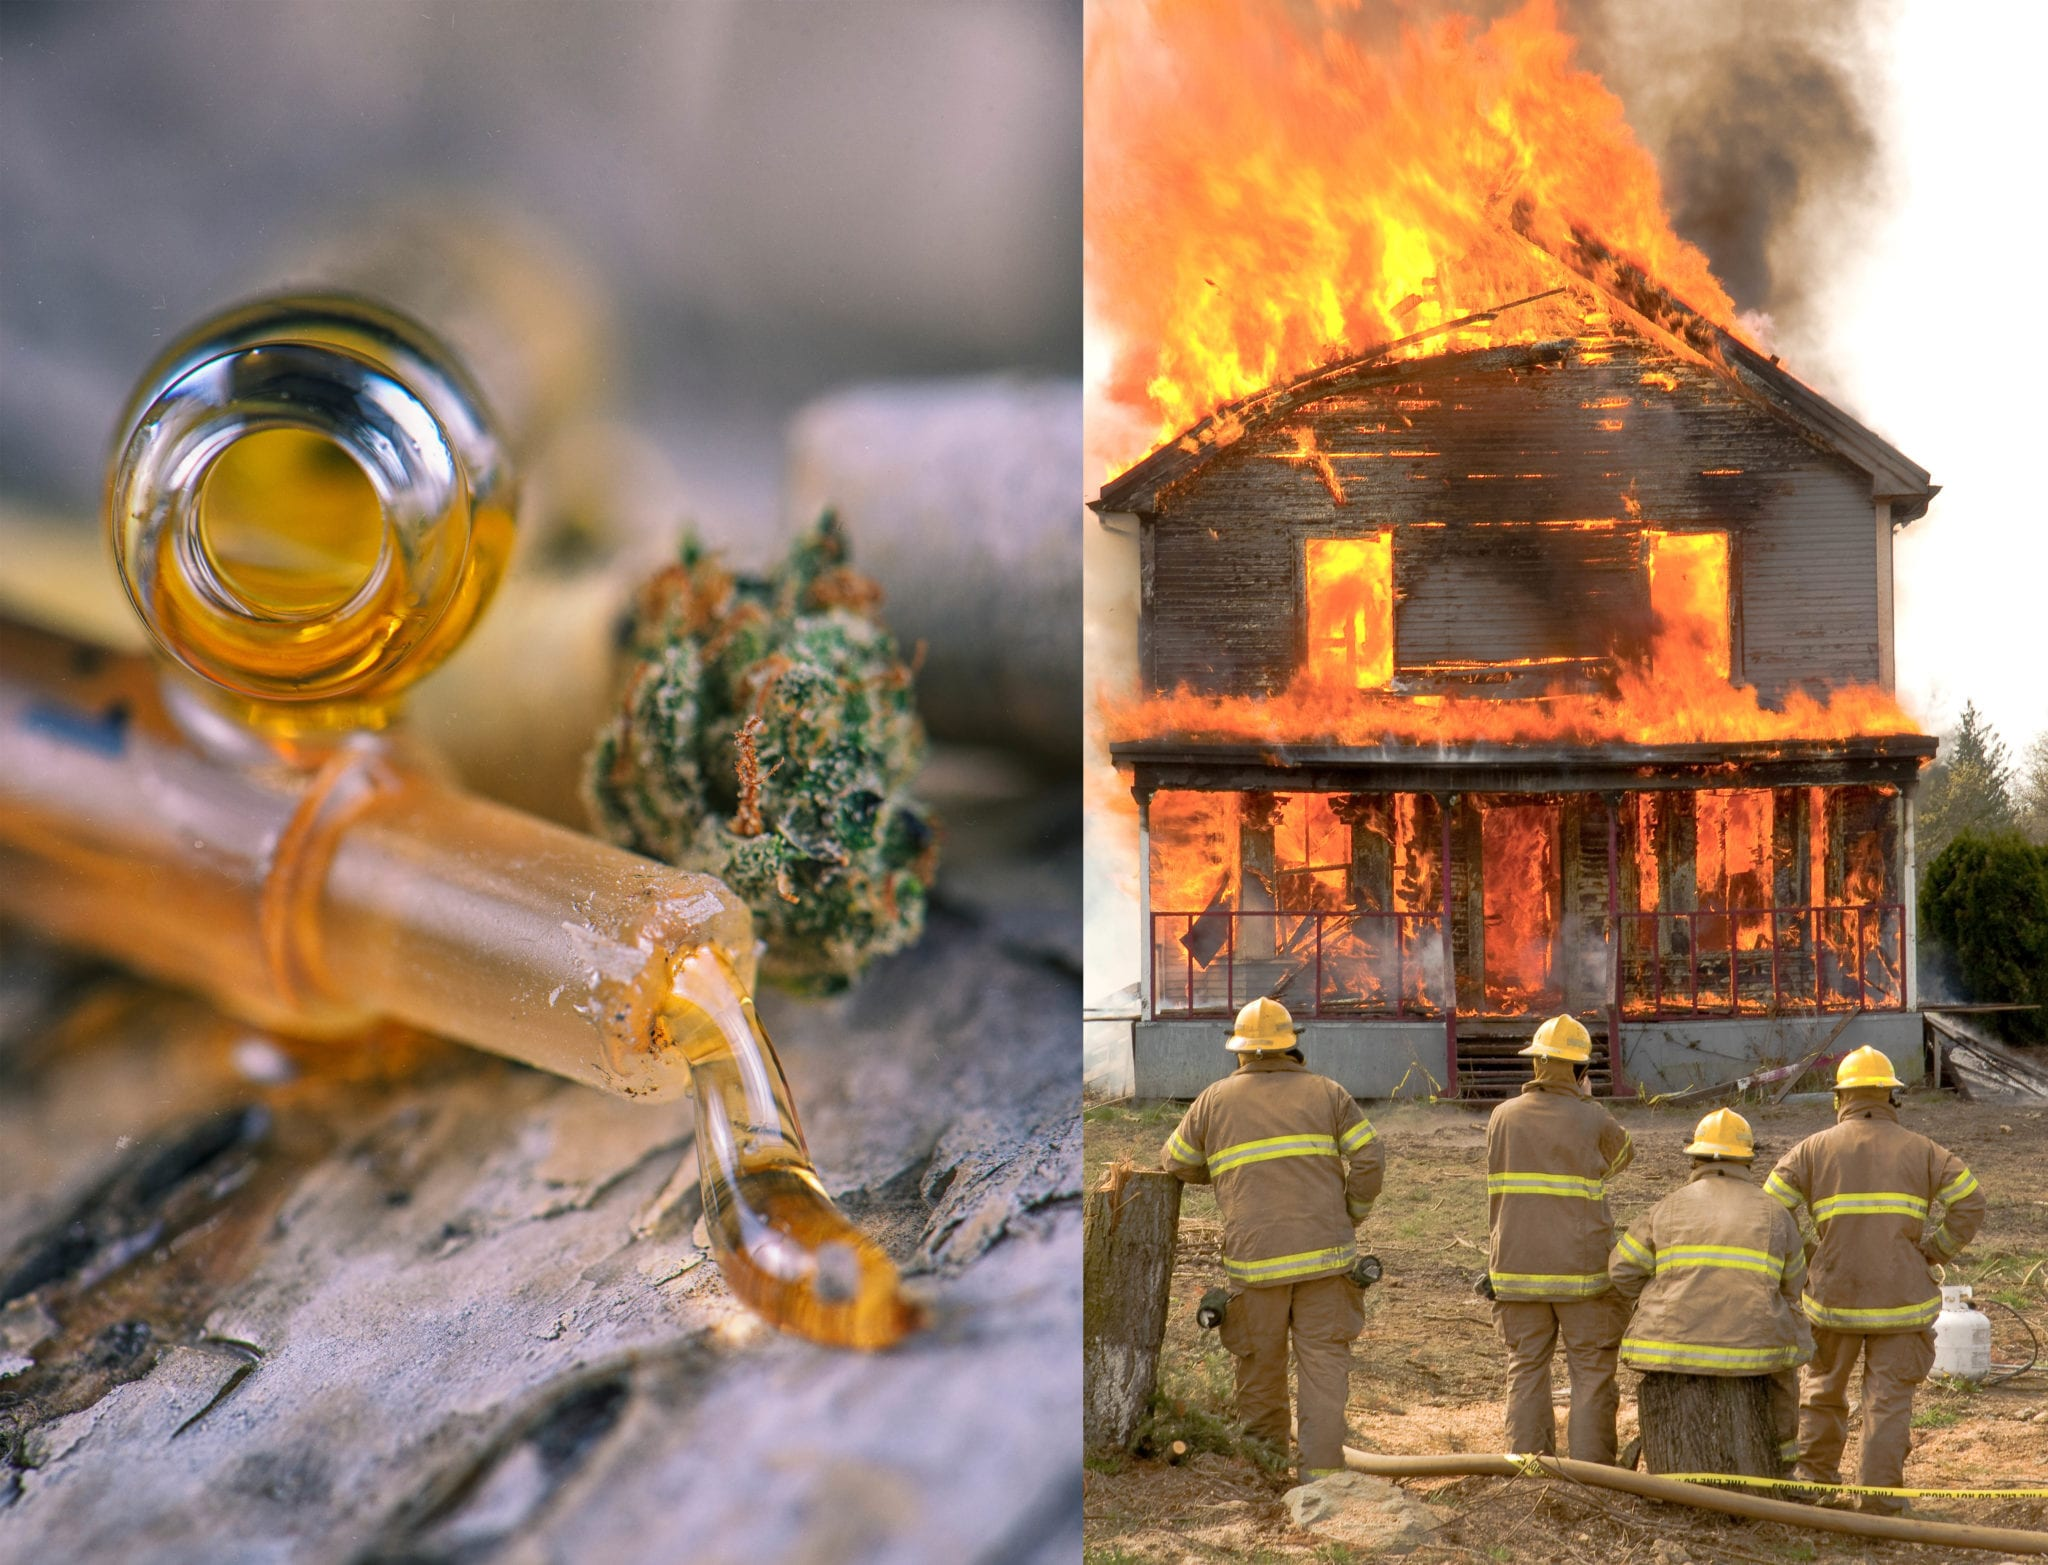 The extraction process for cannabis hash oil using butane is dangerous in the U.S. and explosions are on the rise in underground operations.